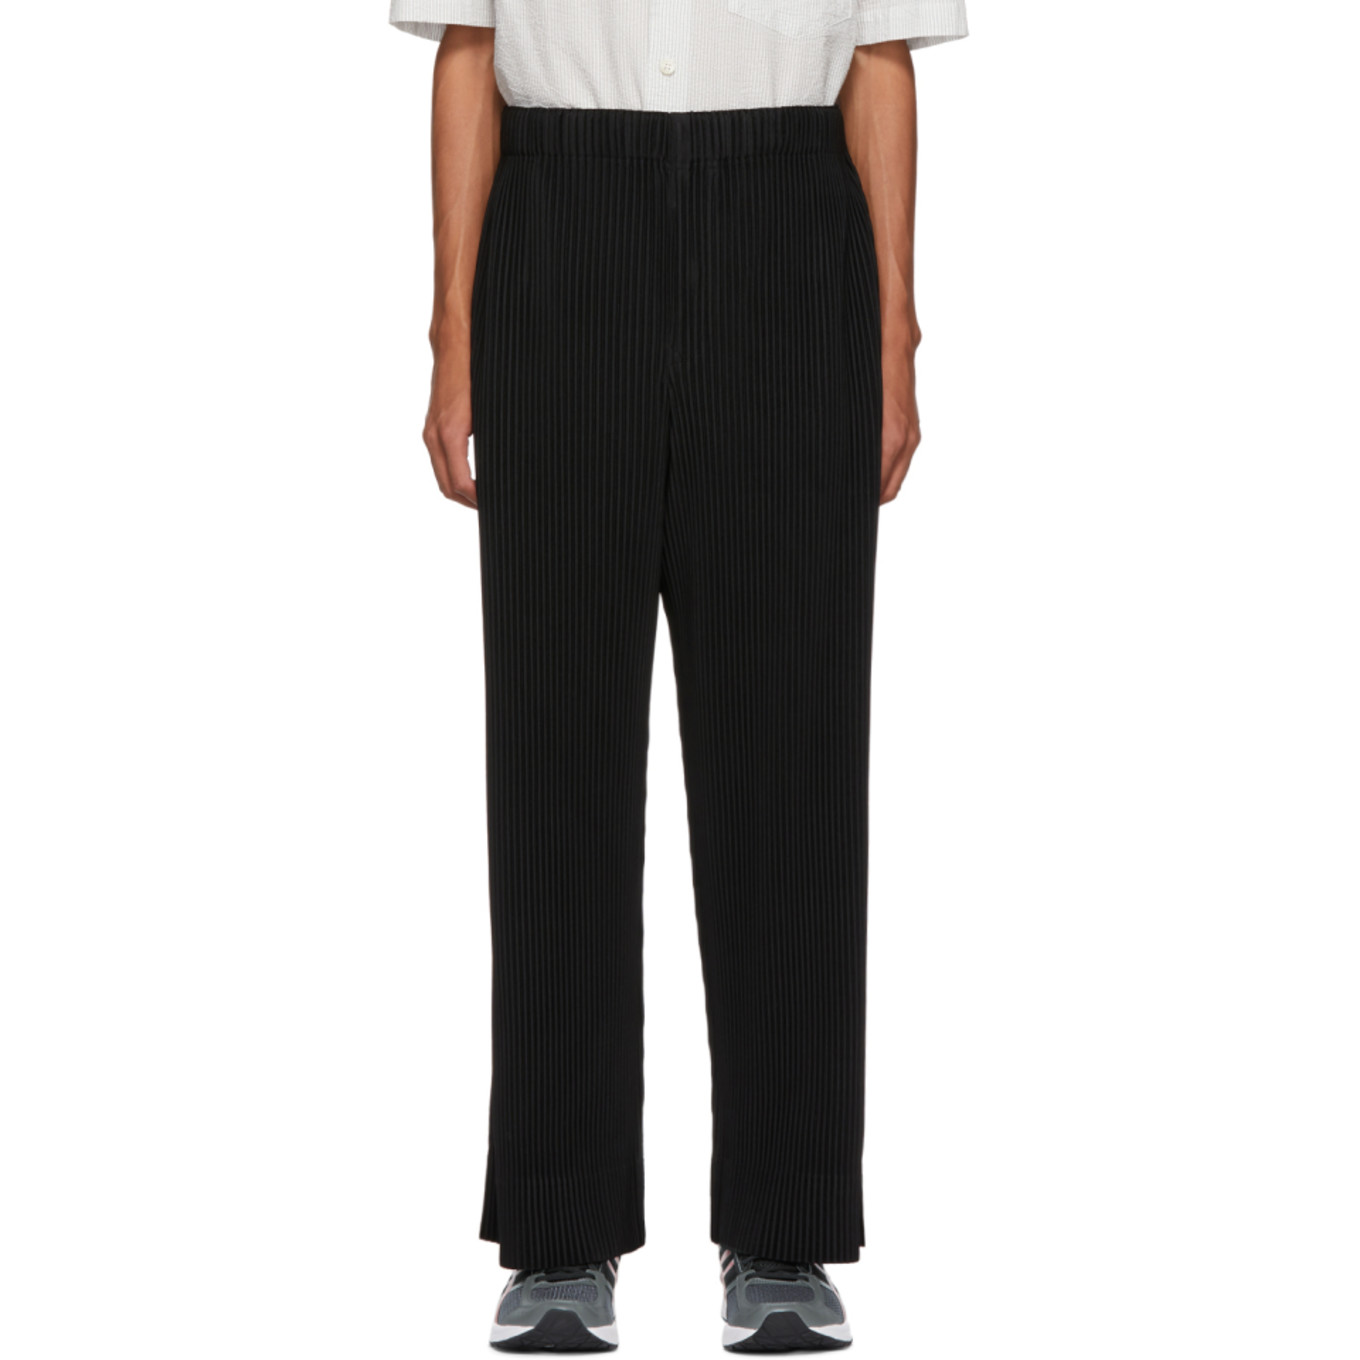 Black Pleated Wide Leg Trousers by Homme PlissÉ Issey Miyake